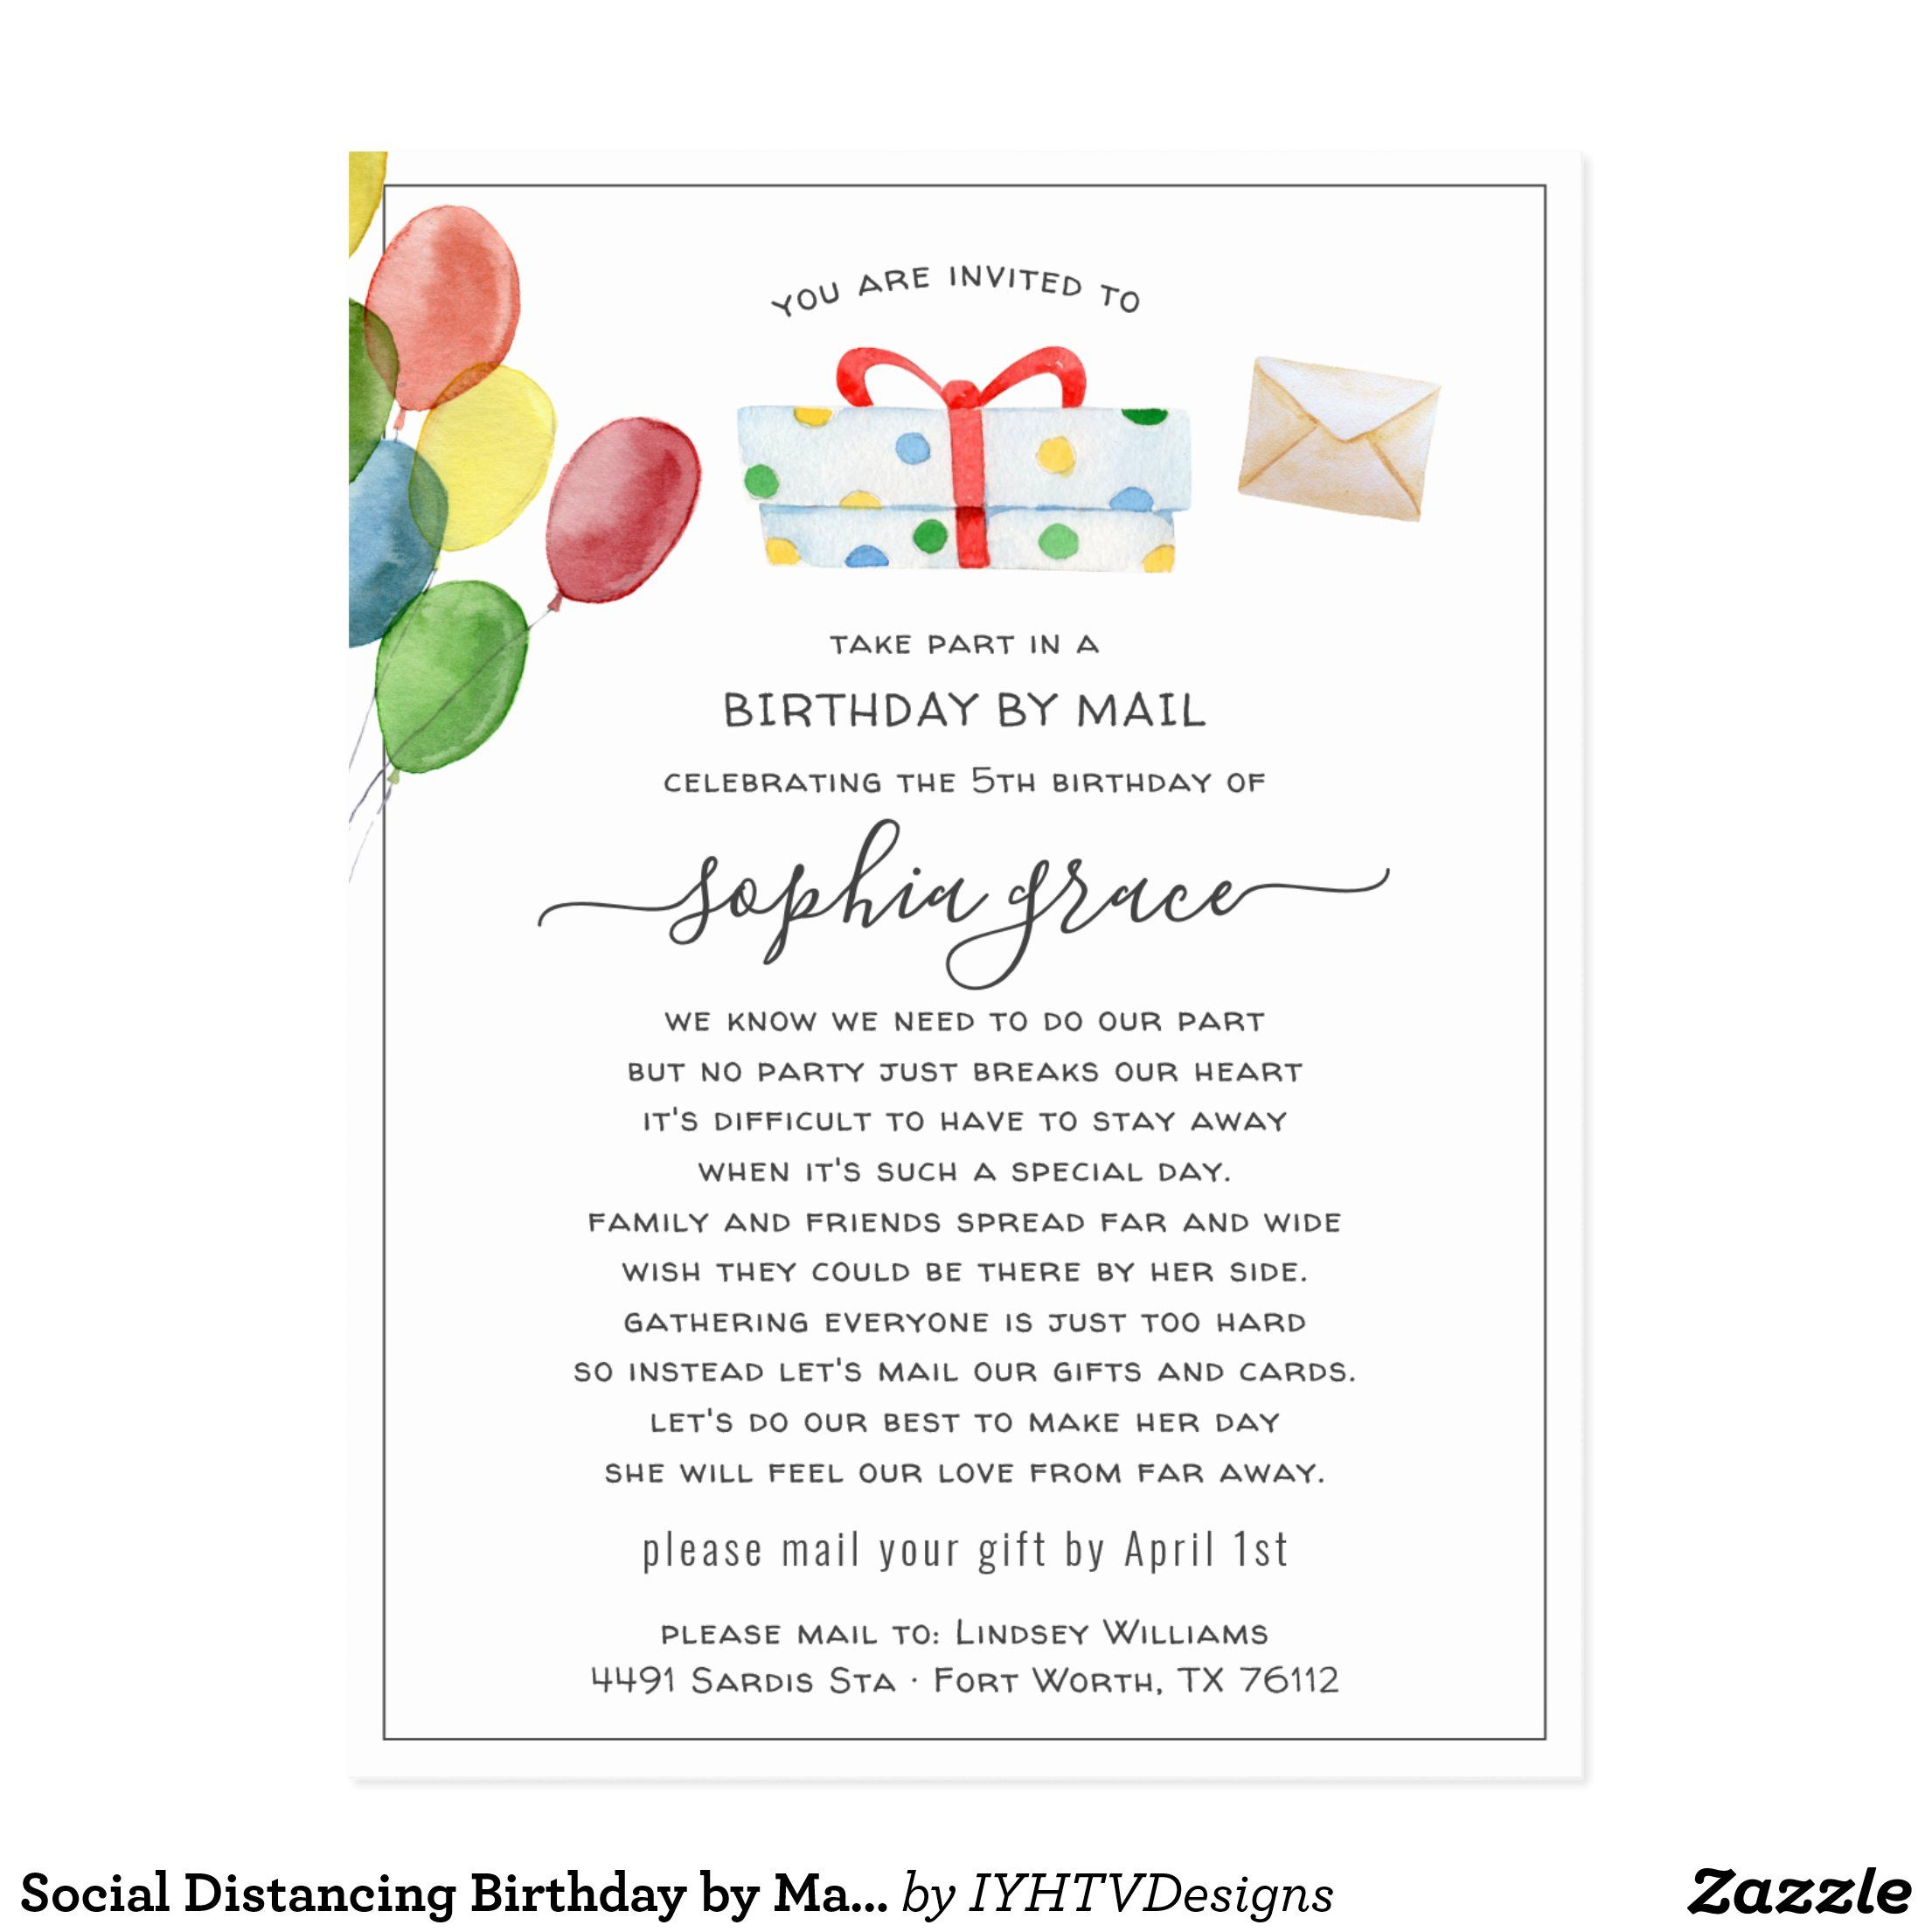 social distancing birthday by mail